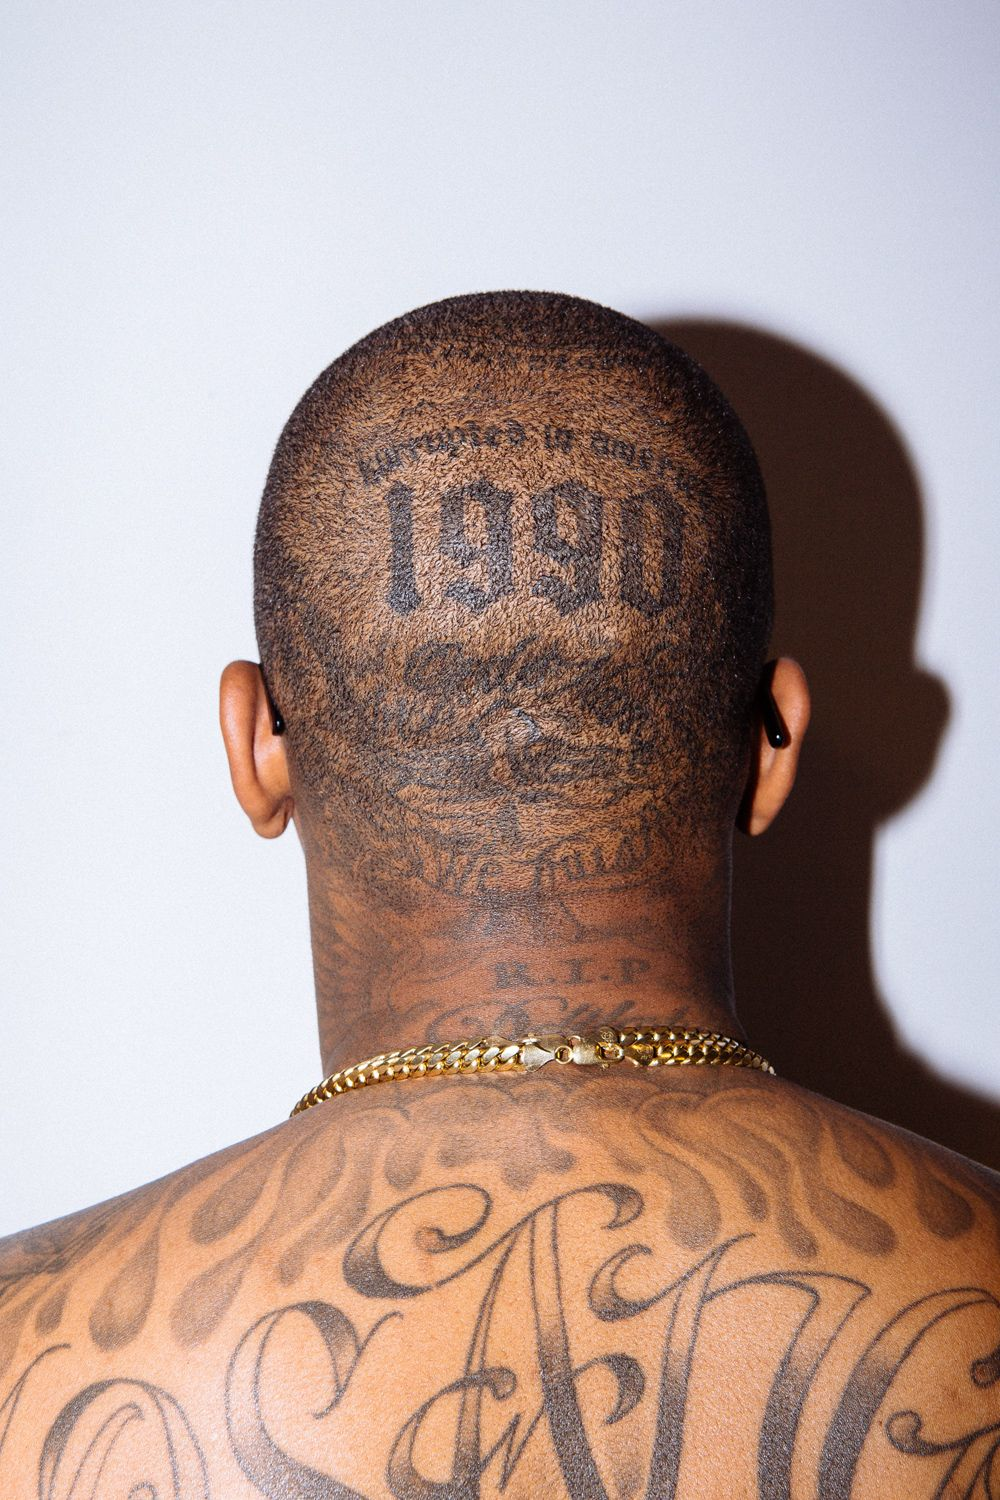 e3d73e694 Yg Tattoos, Head Tattoos, Yg 4hunnid, Rapper, Ink Art, Art Direction